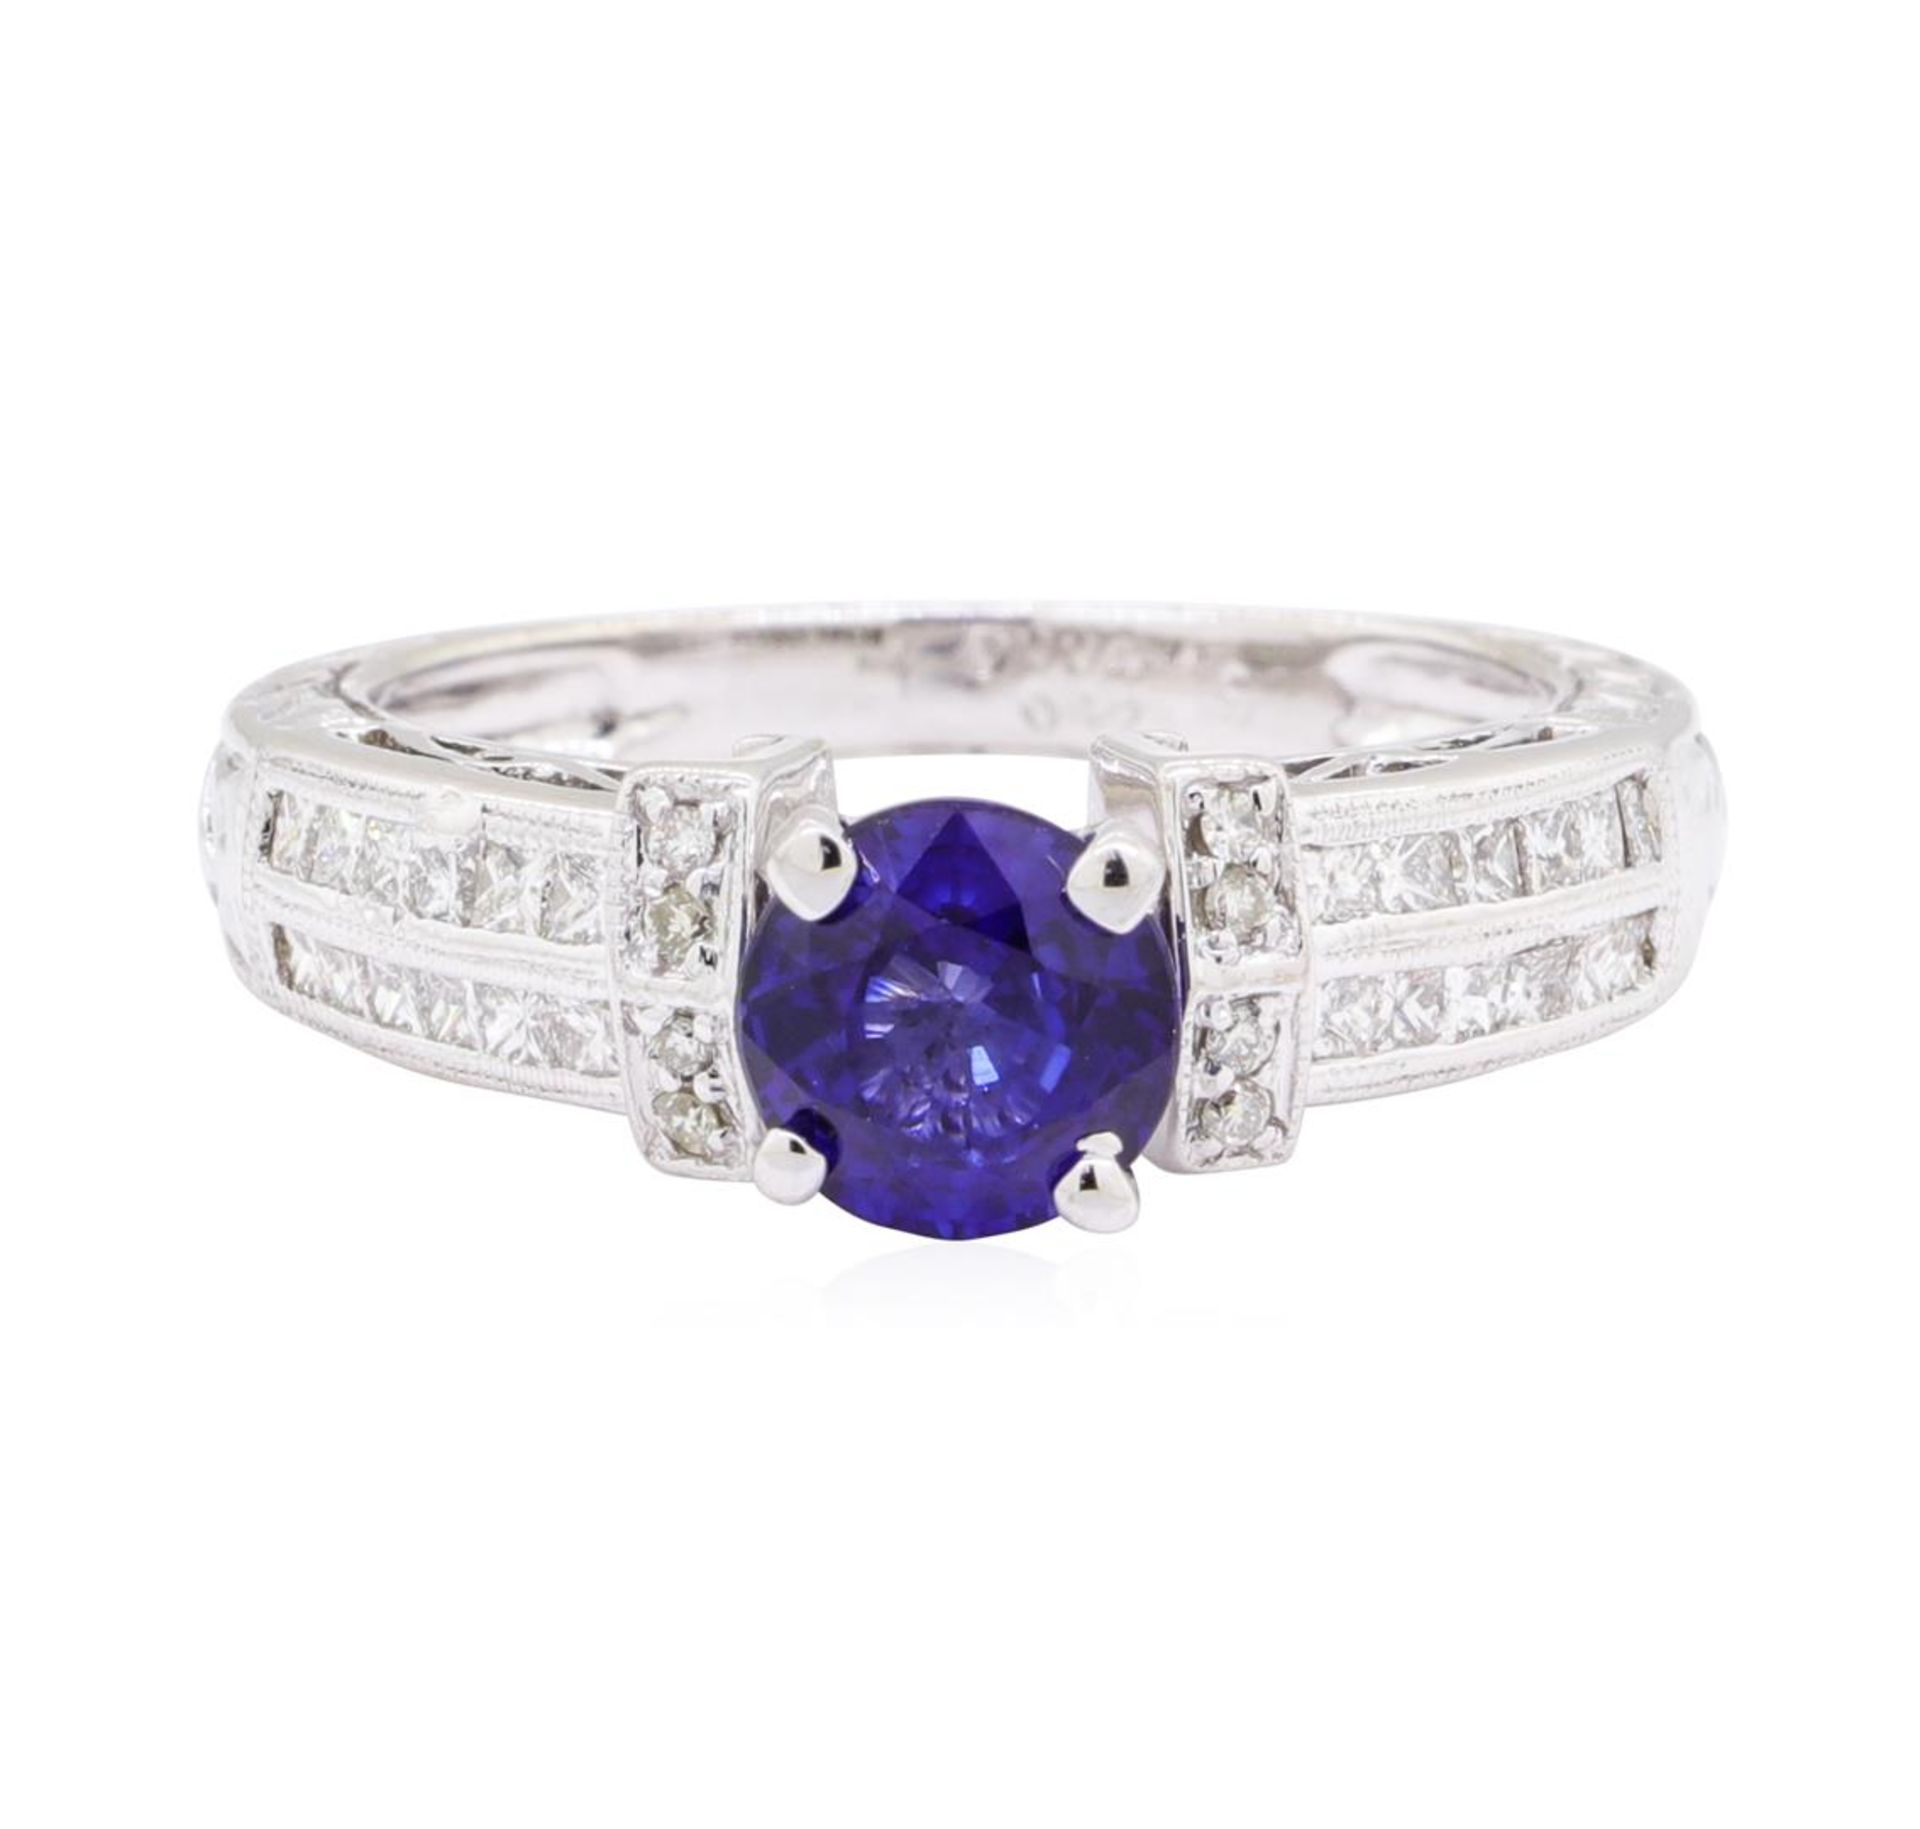 1.36ct Sapphire and Diamond Ring - 14KT White Gold - Image 2 of 4